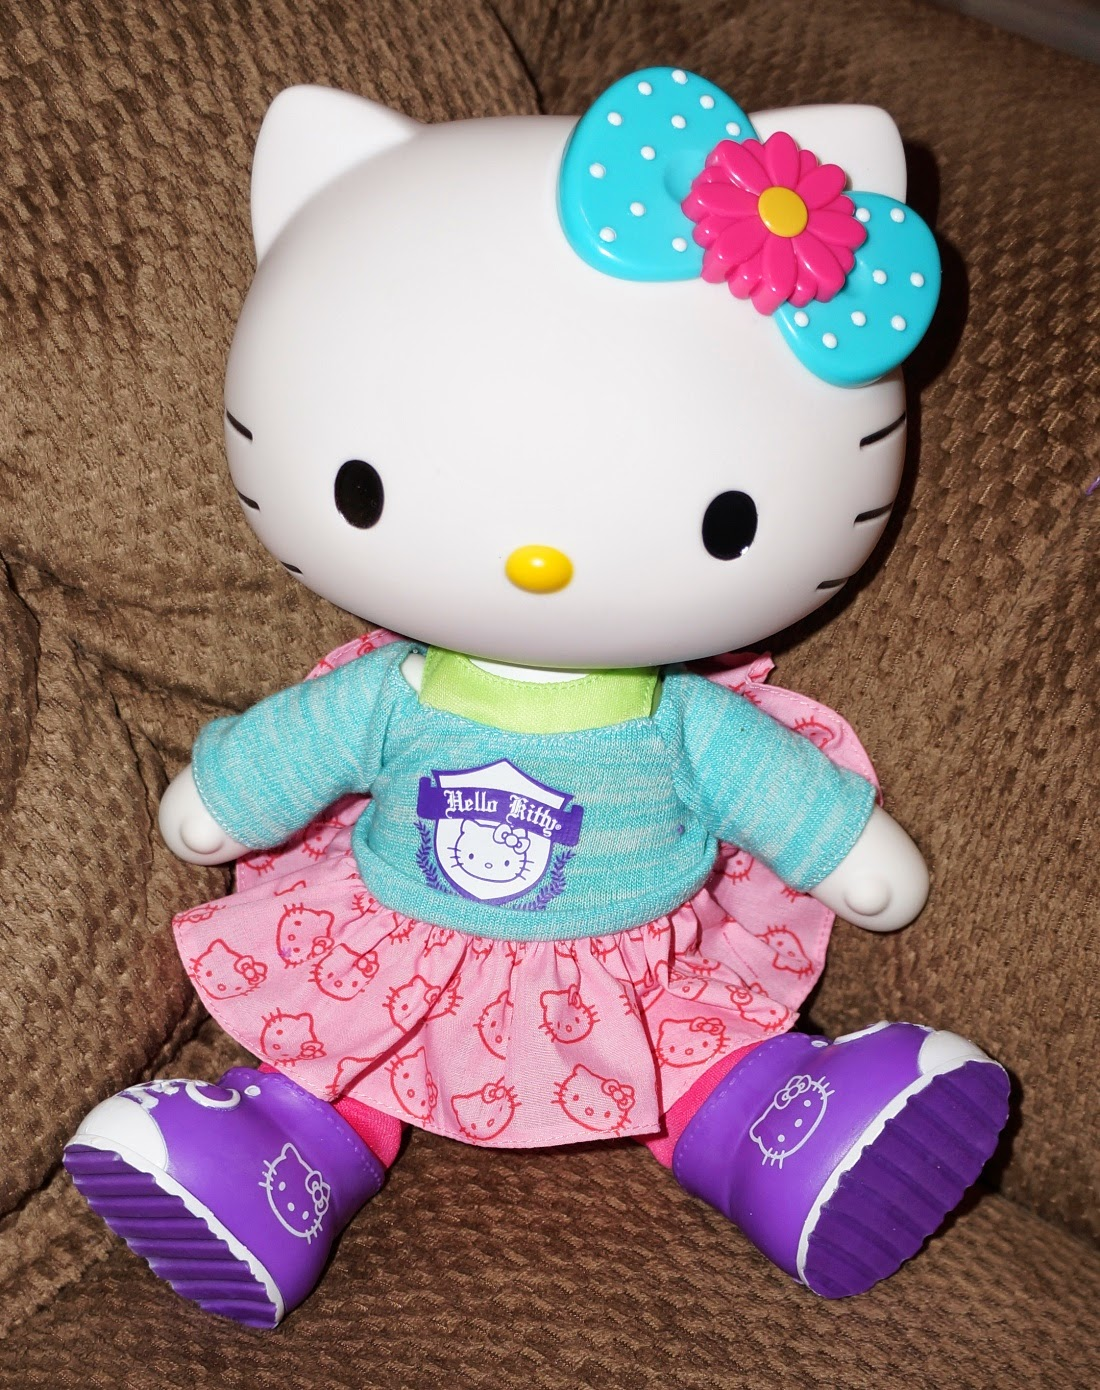 Cool Kitty Toys Evan And Lauren 39s Cool Blog 11 12 13 Hello Kitty